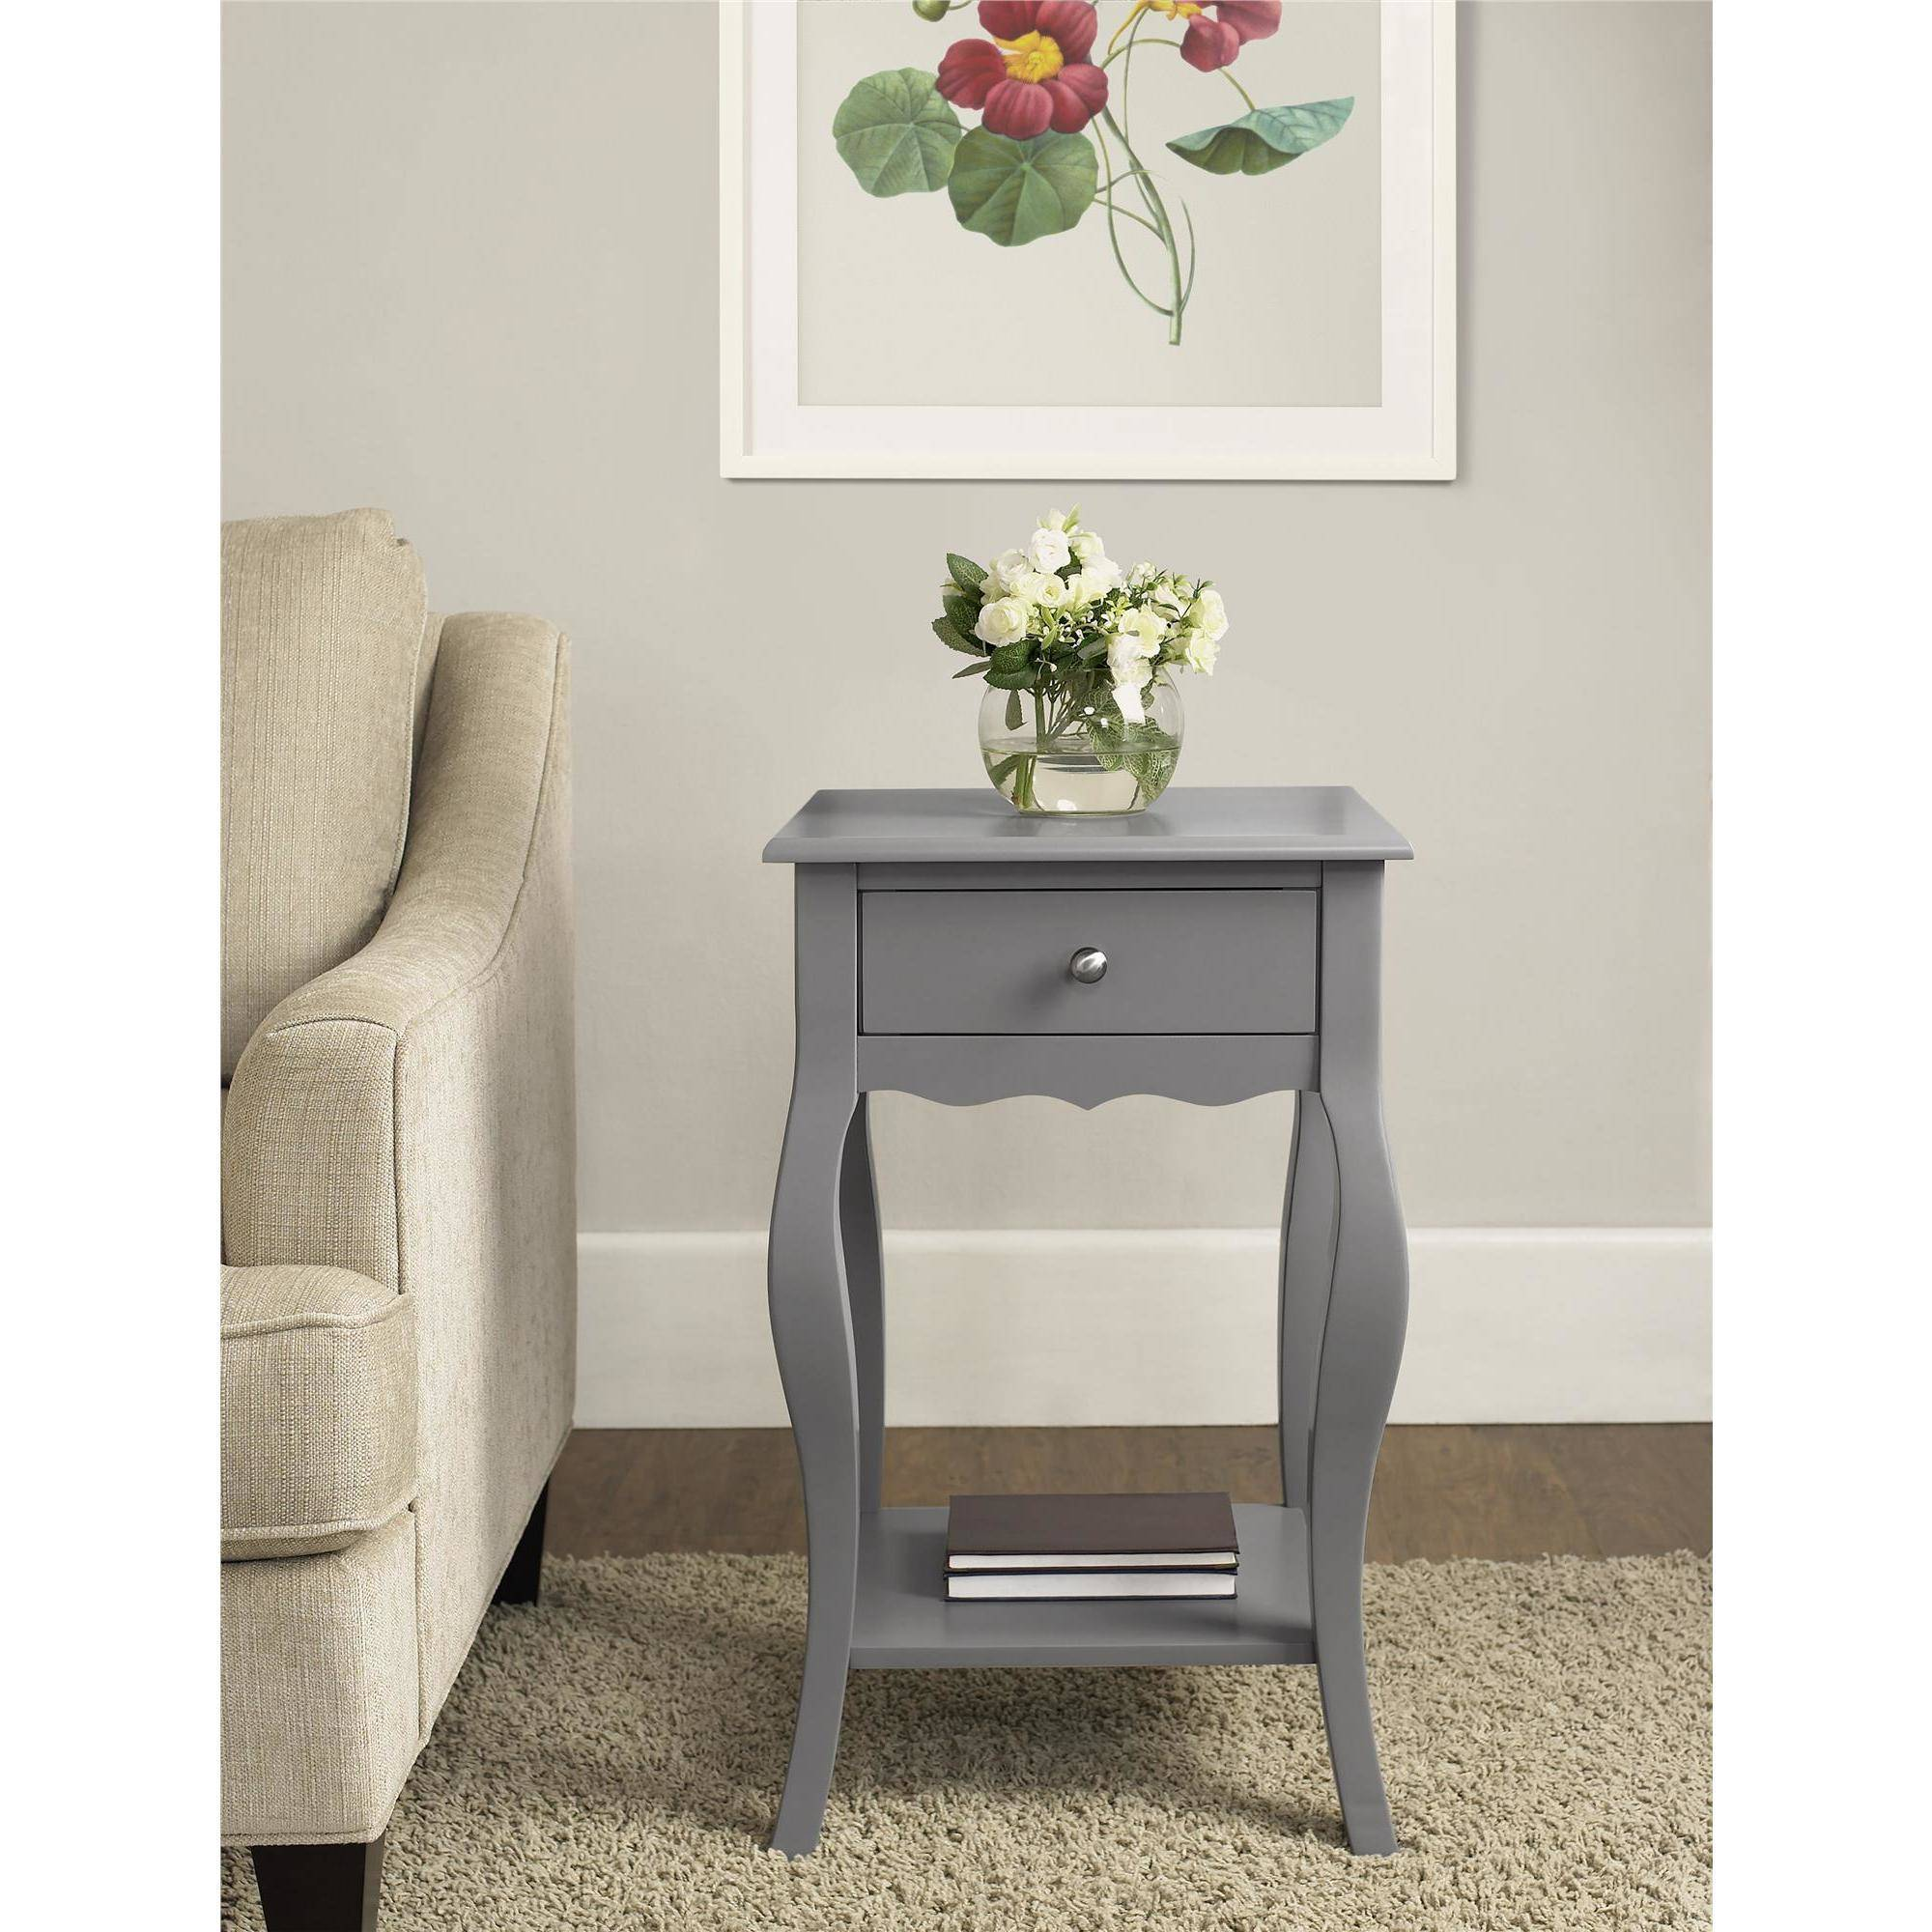 ameriwood home kennedy accent table gray grey antique buffet large patio cover ashley furniture loveseat double drop leaf legs diy small wood piece cocktail sets keter ice bucket